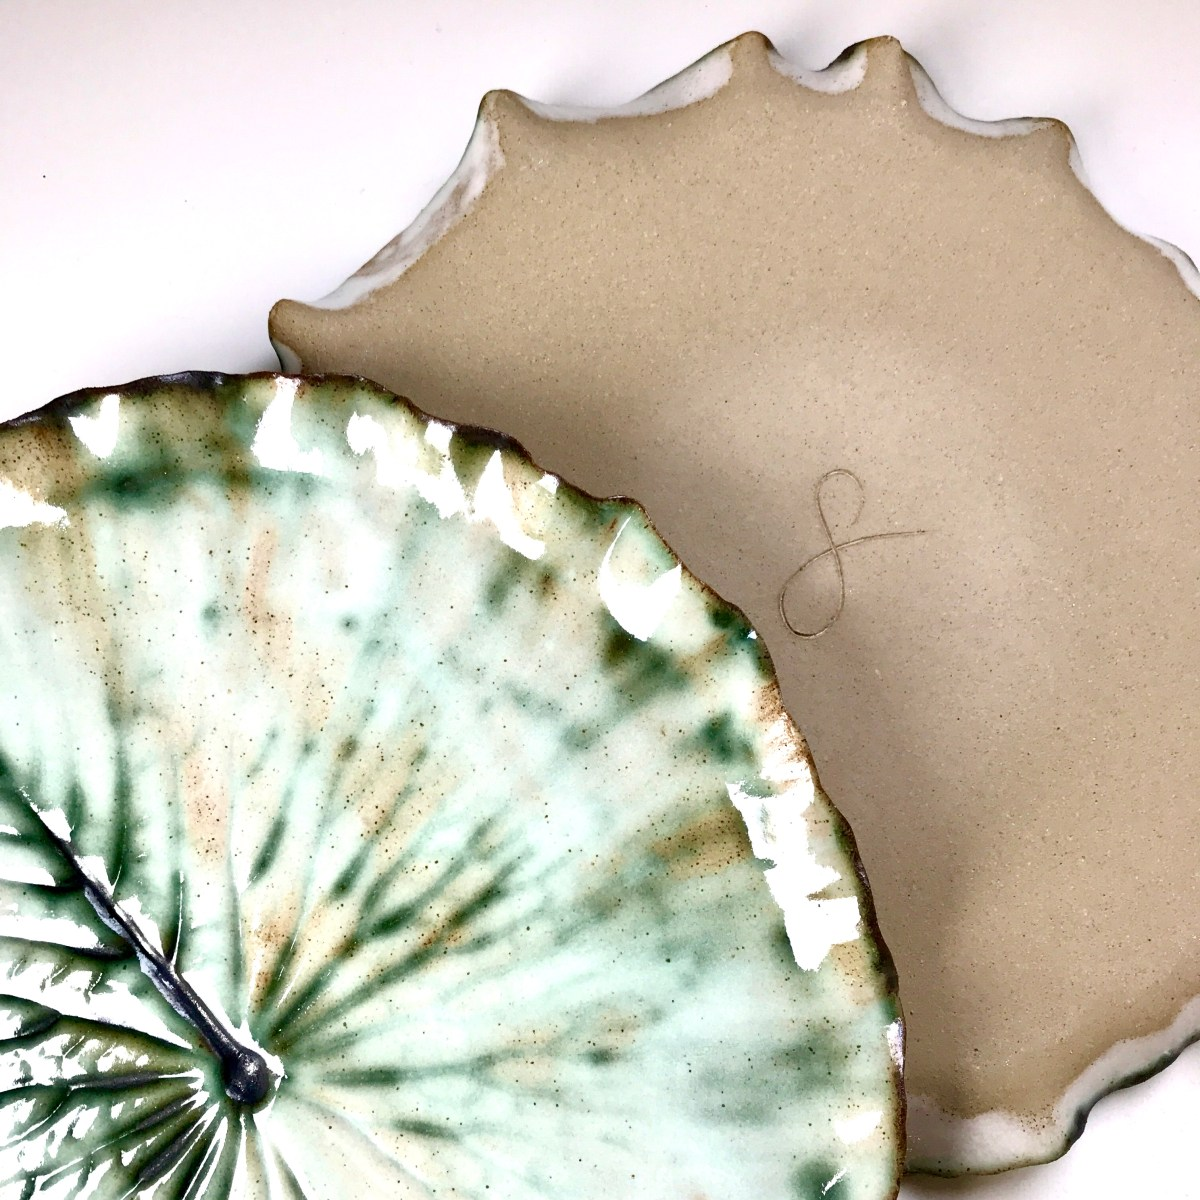 Pond Lily Leaf Dinner Plate with Base View by Sonya Ceramic Art